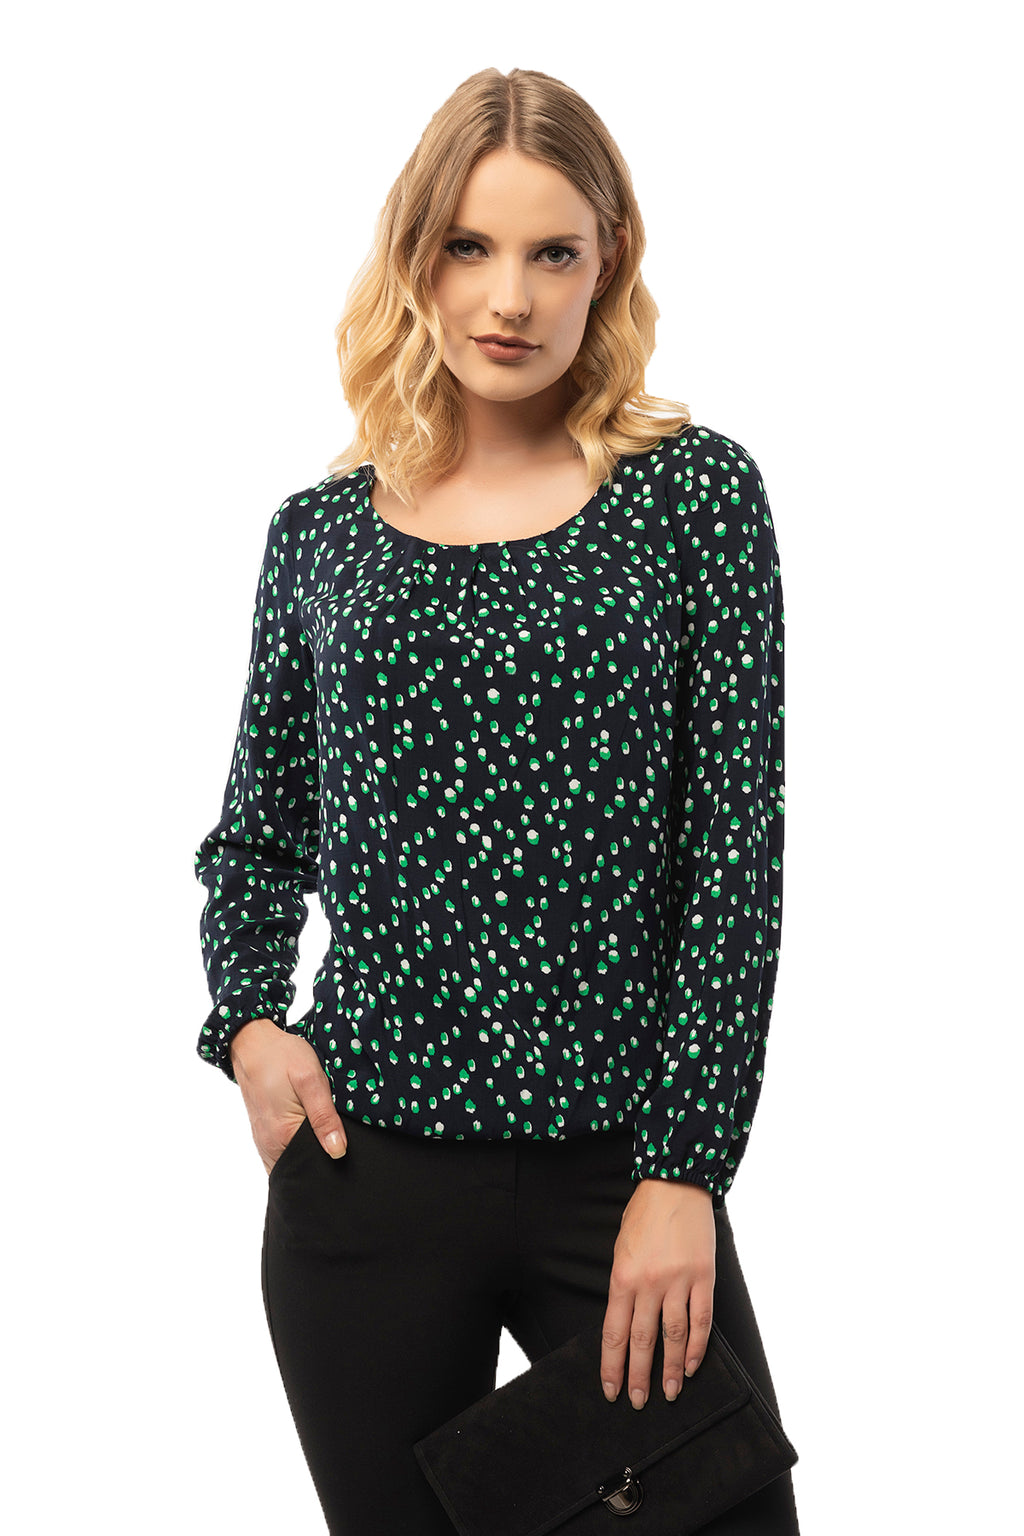 Gathered Bottom & Neck Navy Blouse - Long Sleeve